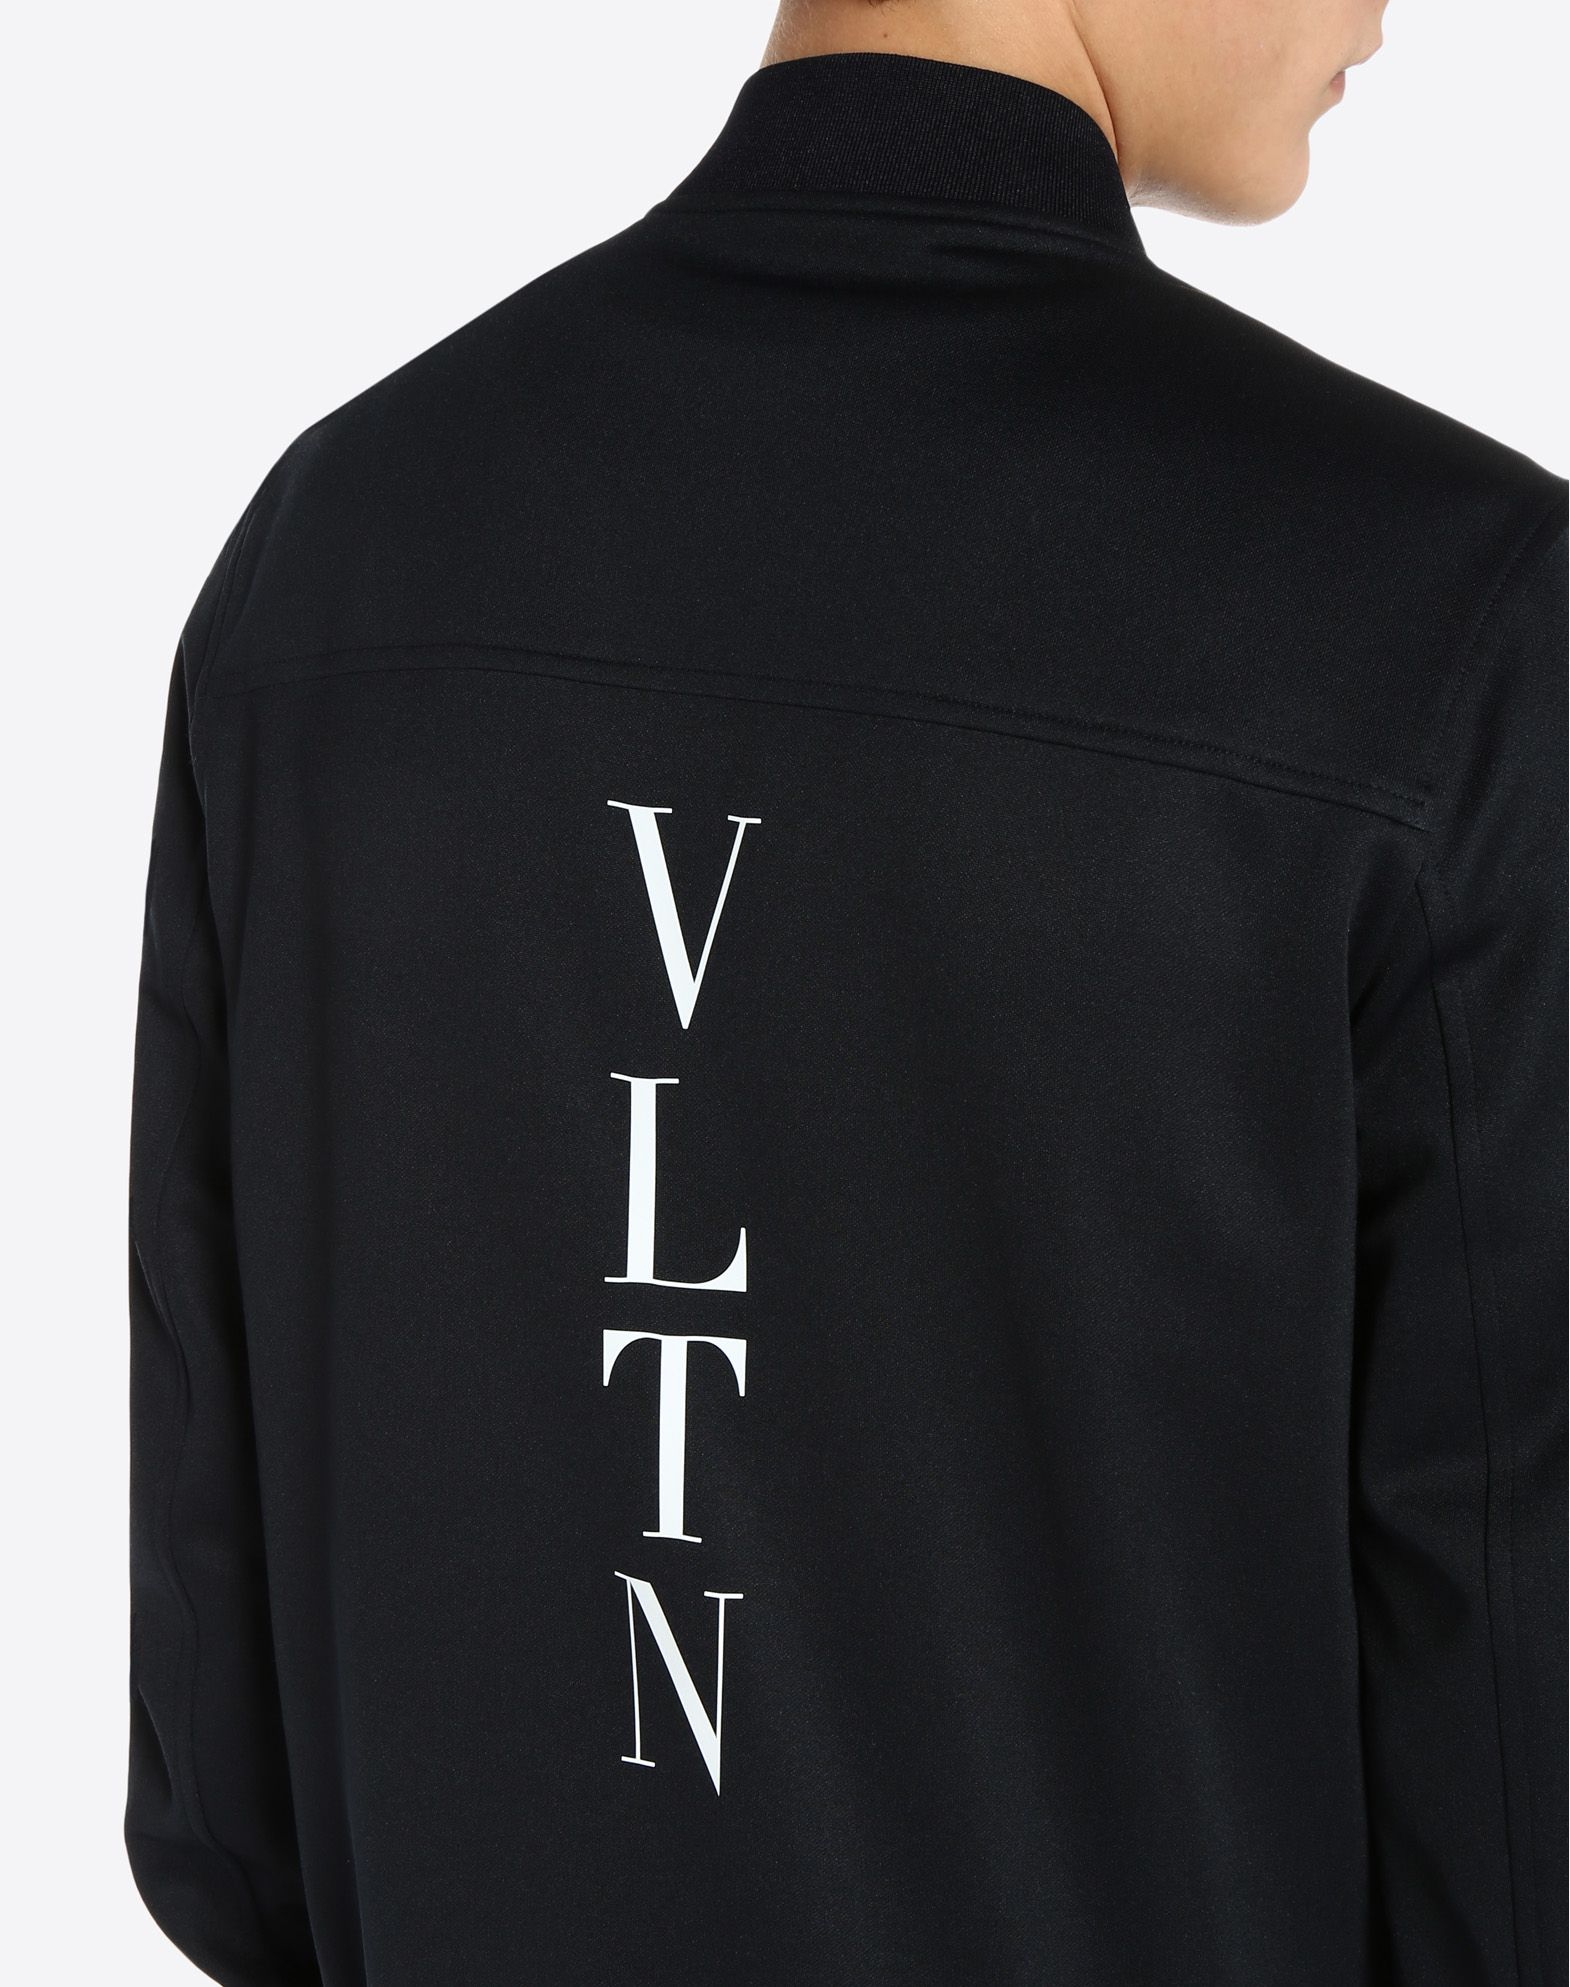 VALENTINO Vertical stripe inlays sweatshirt with VLTN logo JACKET U a